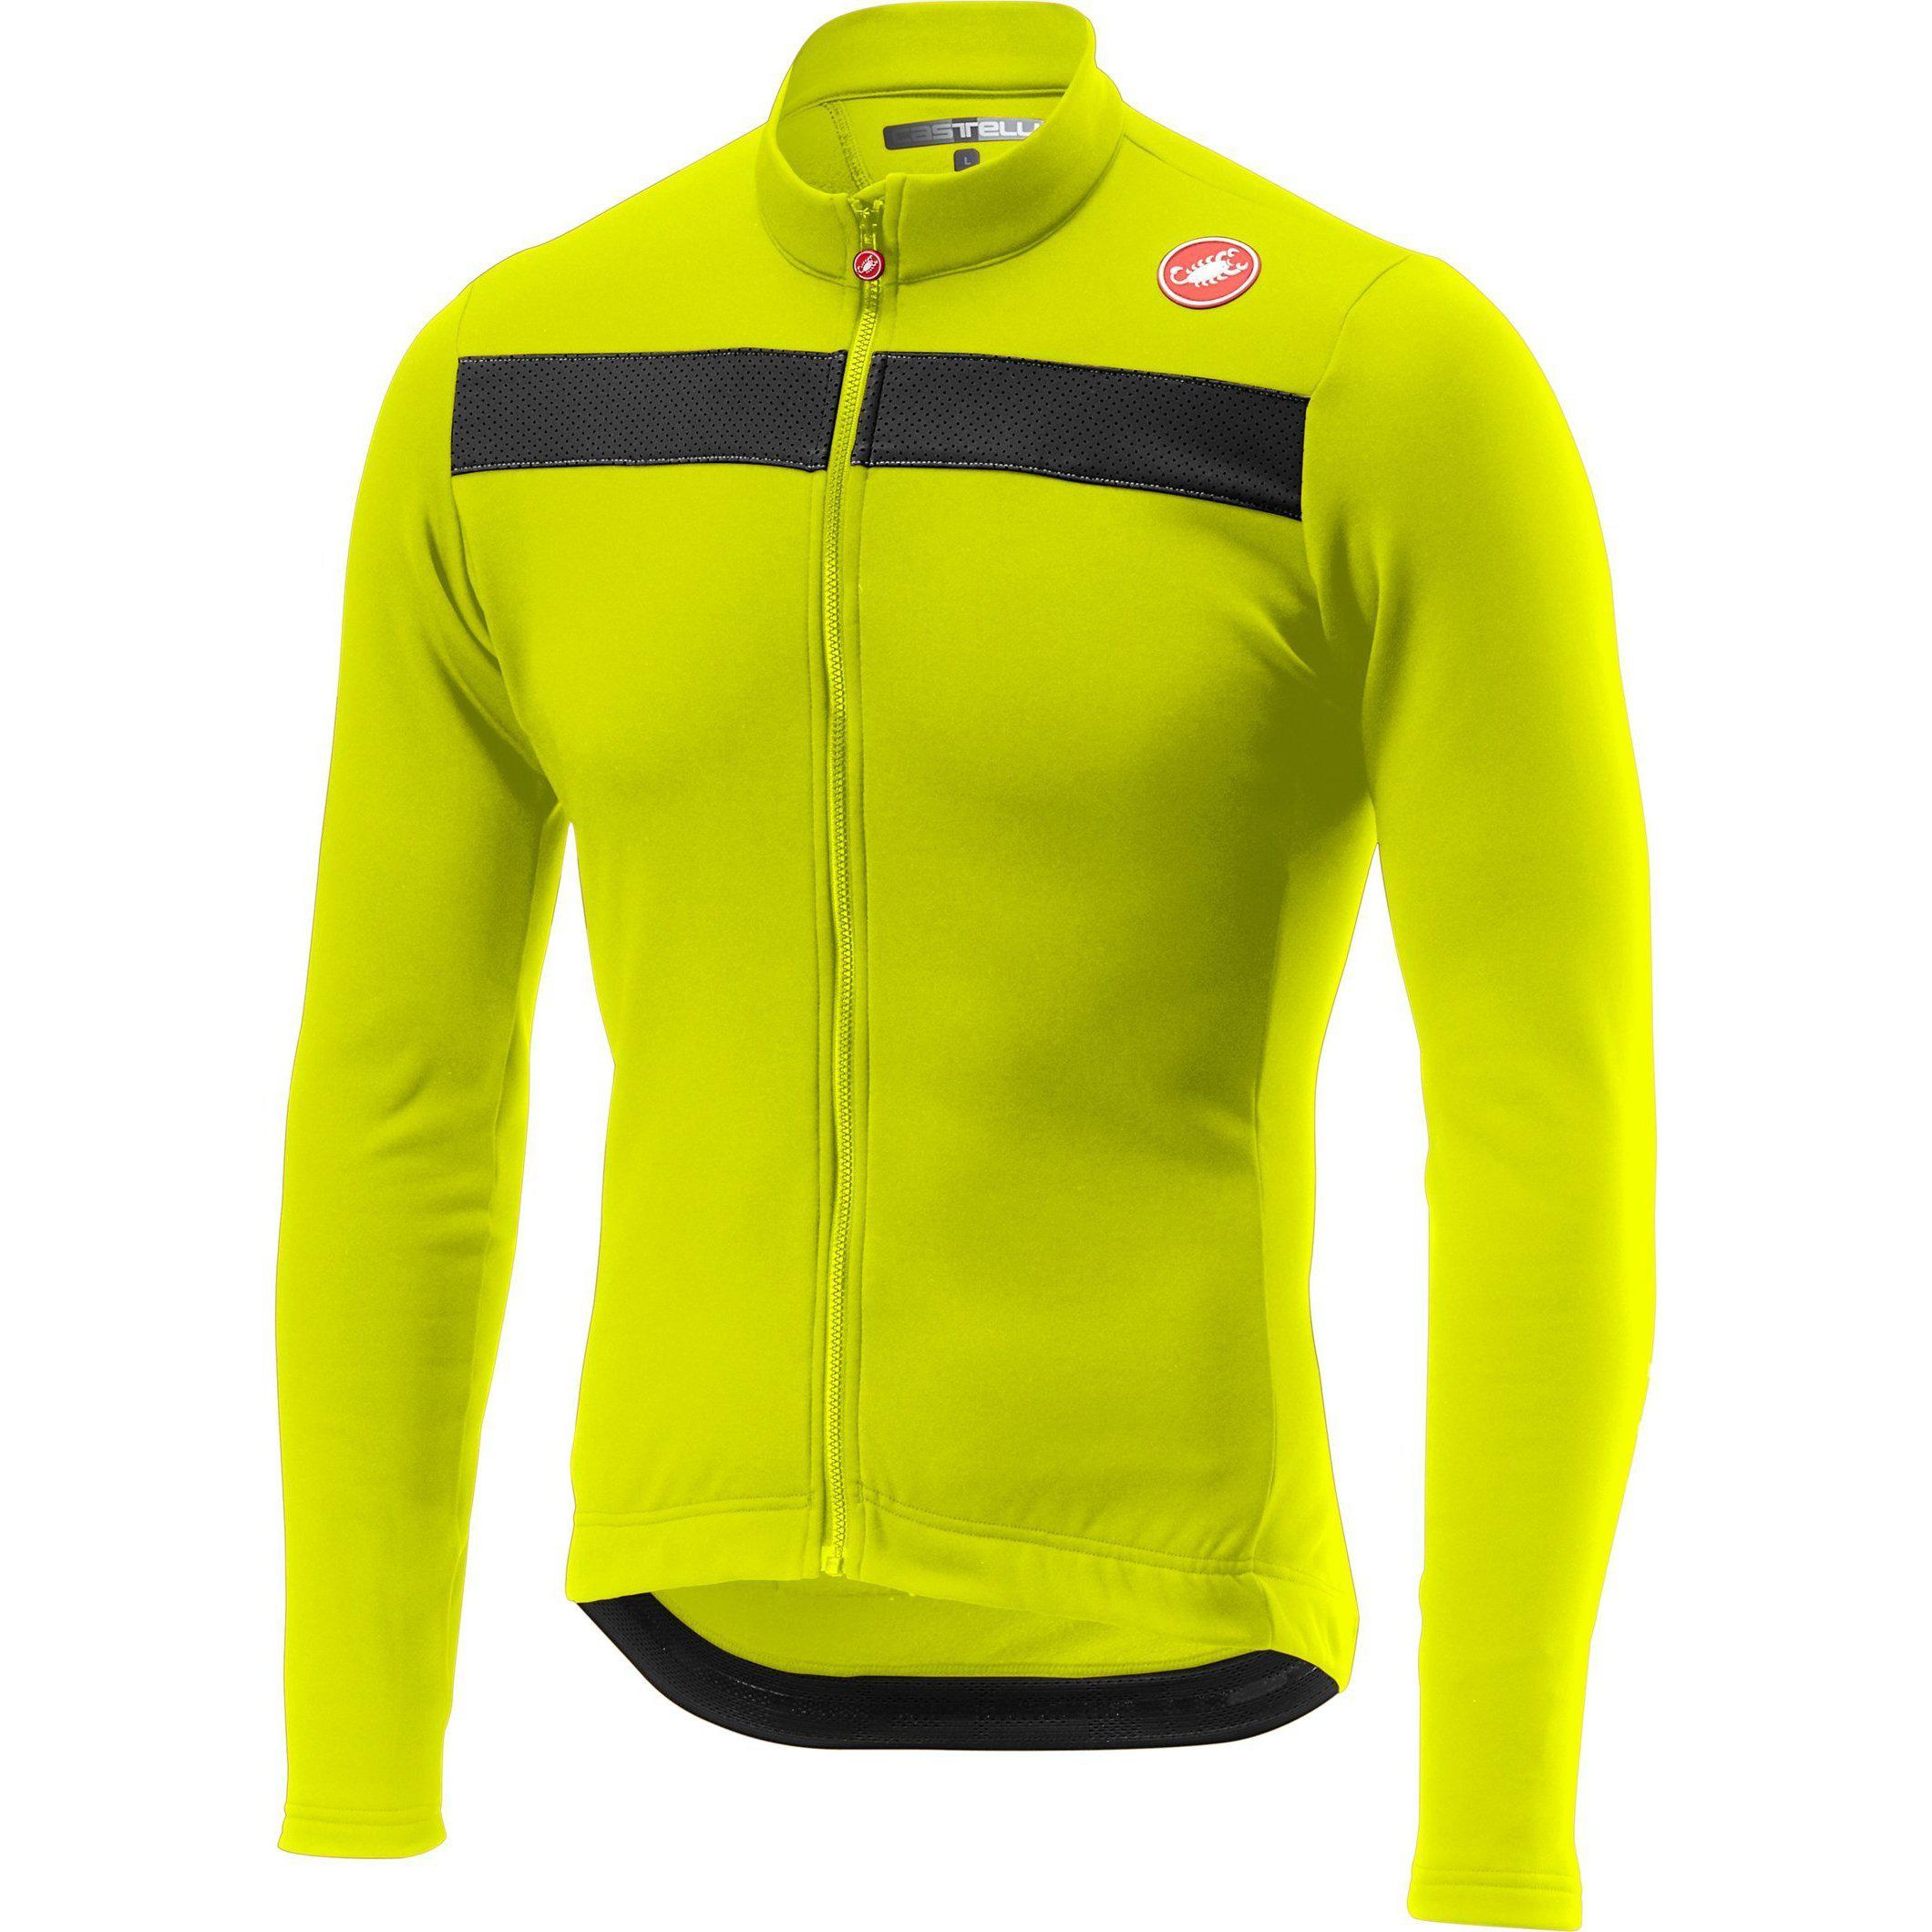 Castelli-Castelli Puro 3 Jersey-Yellow Fluo-XS-CS185110321-saddleback-elite-performance-cycling